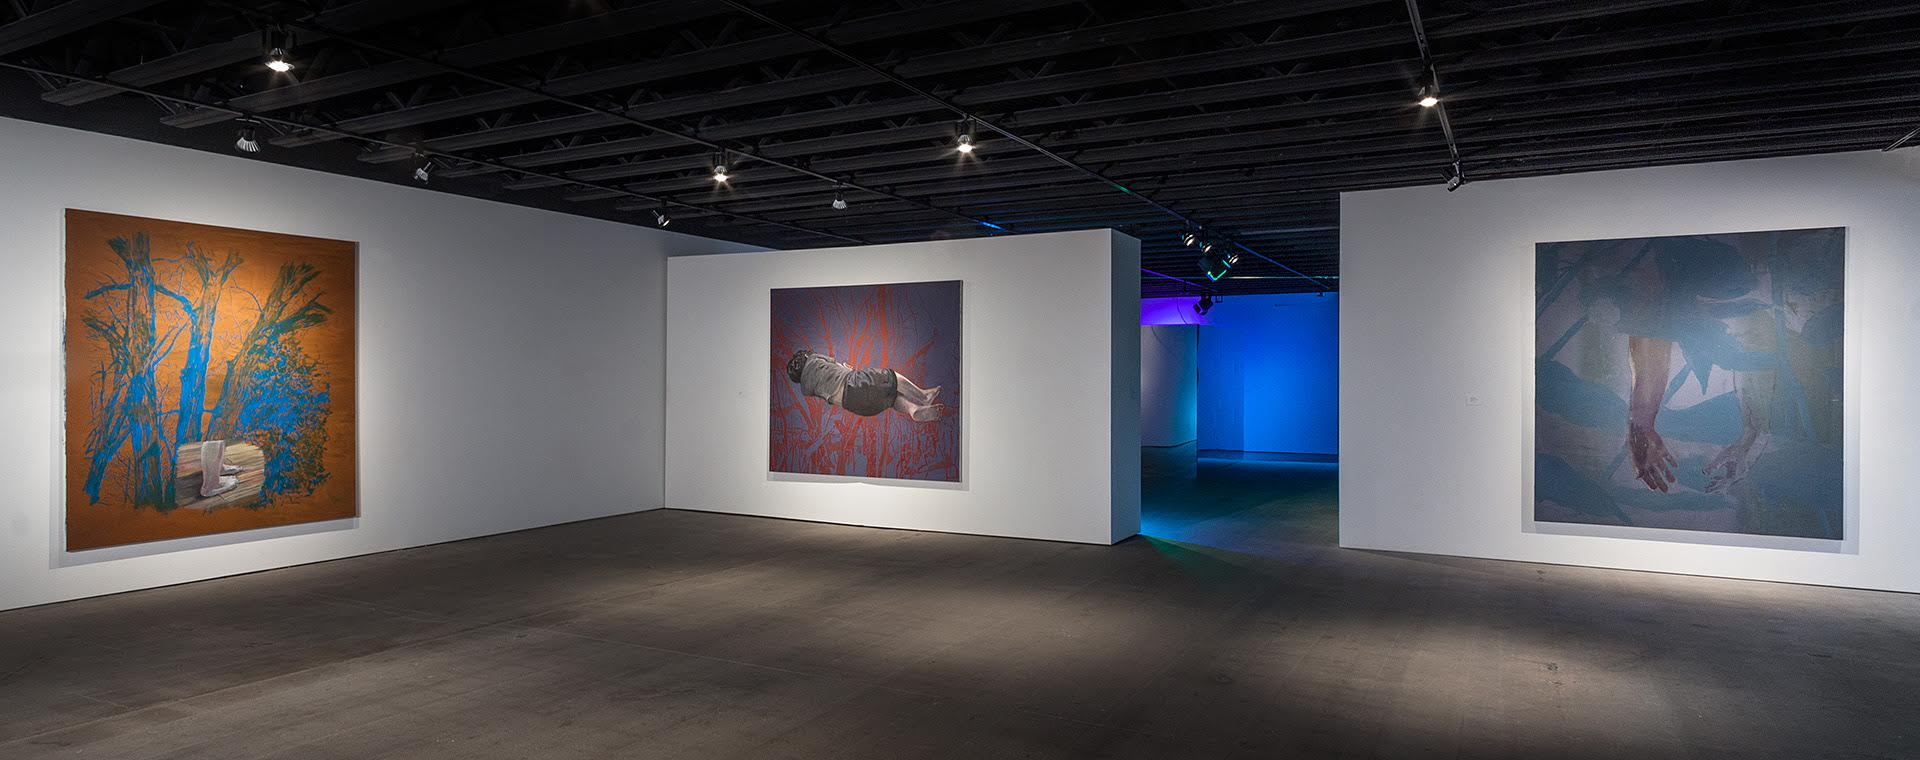 Installation shot of Misha Kligman's work Photo by EG Shempf Image Courtesy of H&R Block Artspace